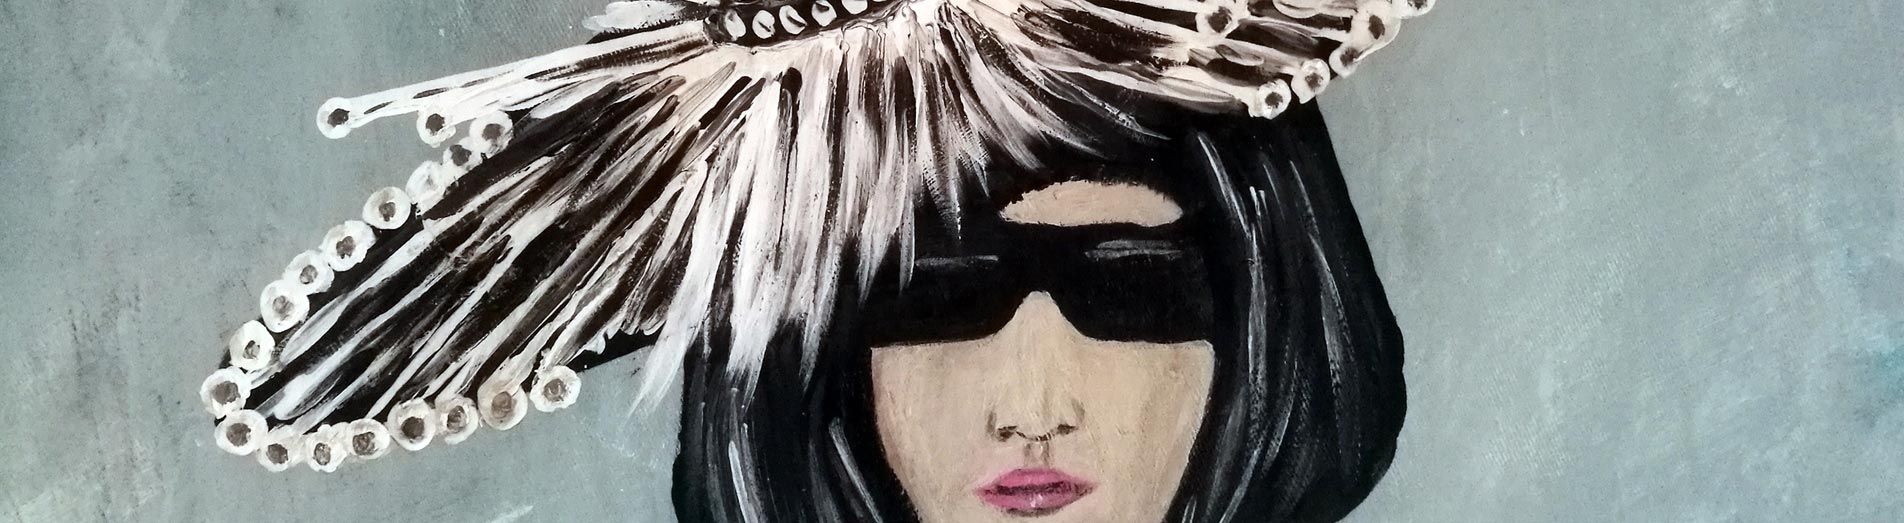 Catwalk-Lady with feathers, Vision of a fashionista on a Catwalk with a wonderful feathers dress.  Original artwork signed P. Joosten, Acrylic on canvas, Dimensions 150 x 100 x 3 cm, 160 x 110 cm with Black wooden frame.